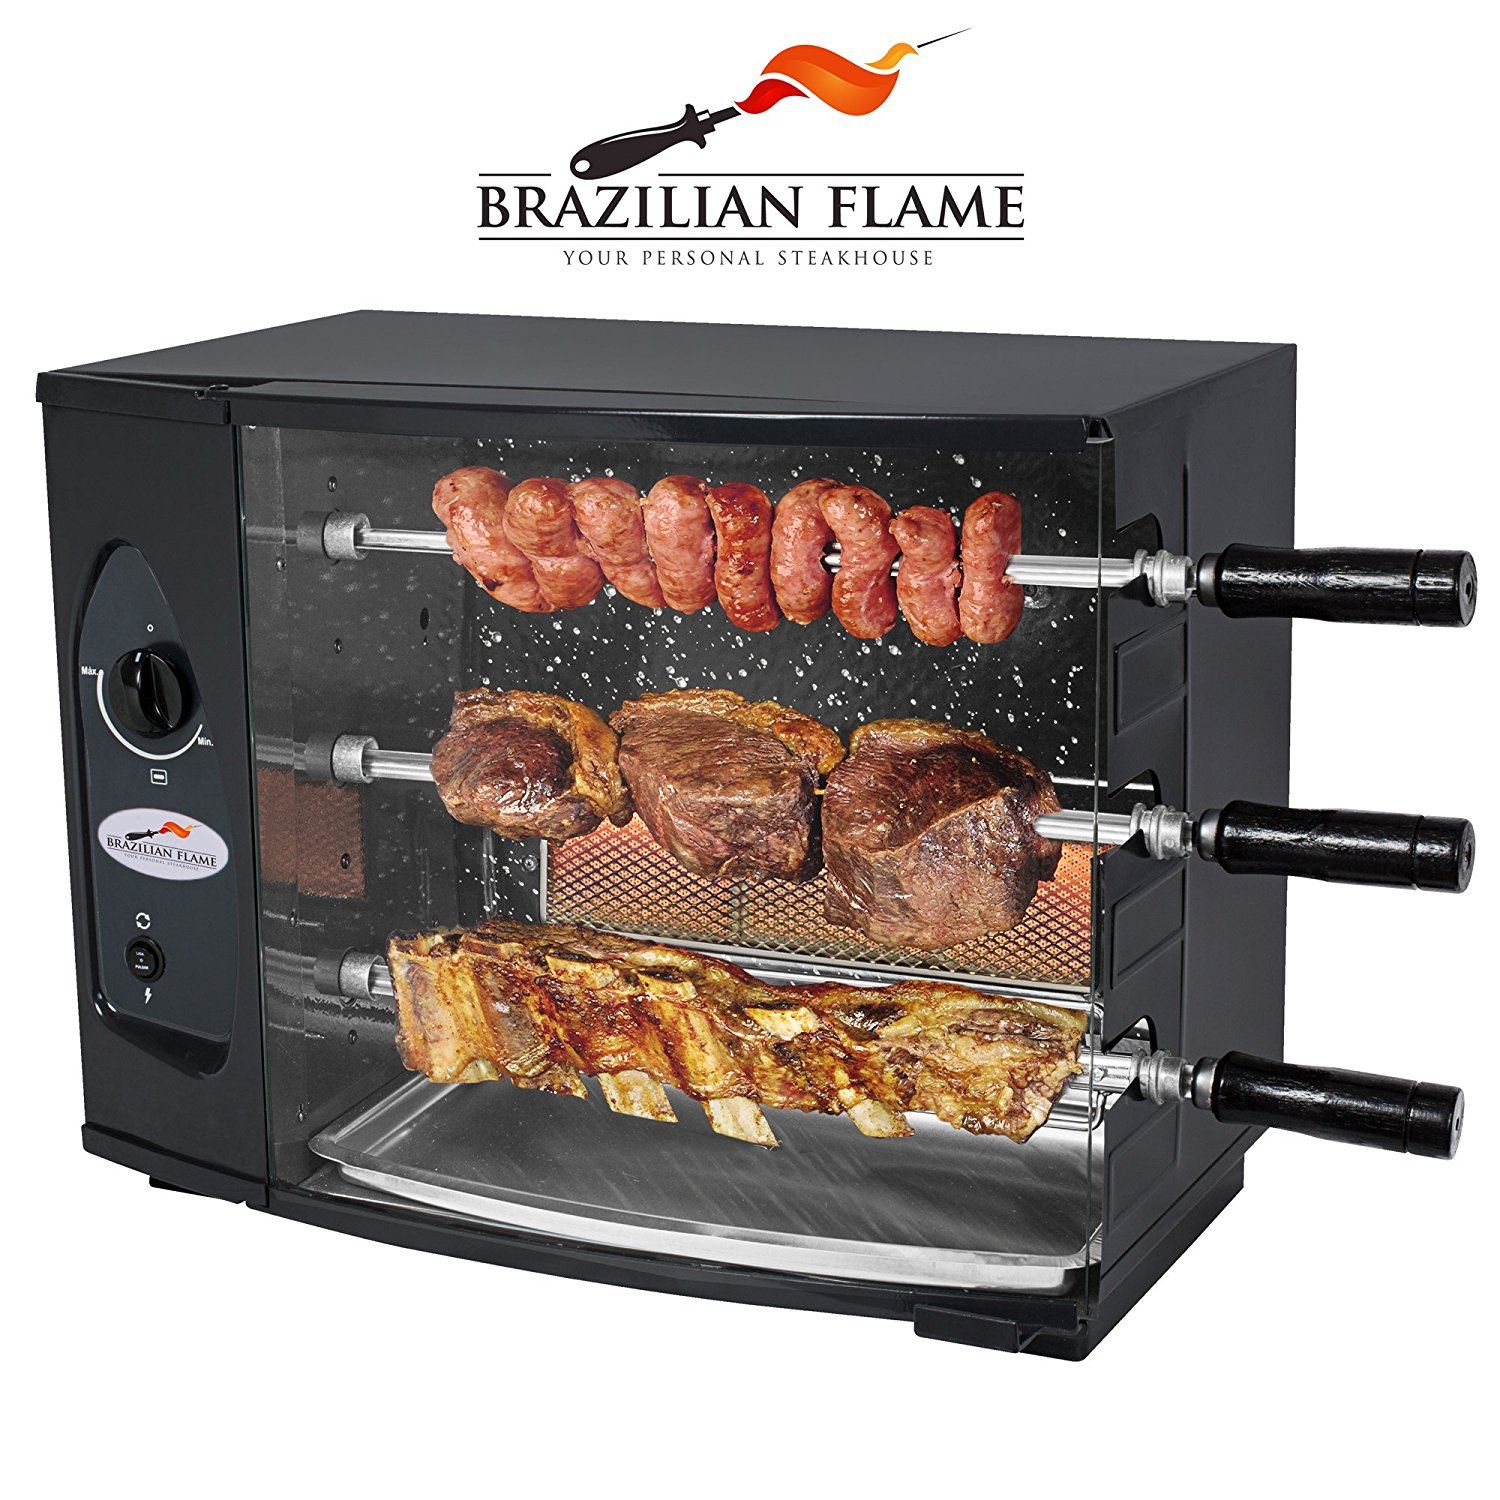 Brazilian Flame 3 Skewer Rotisserie Gas Barbecue / Grill by Arke